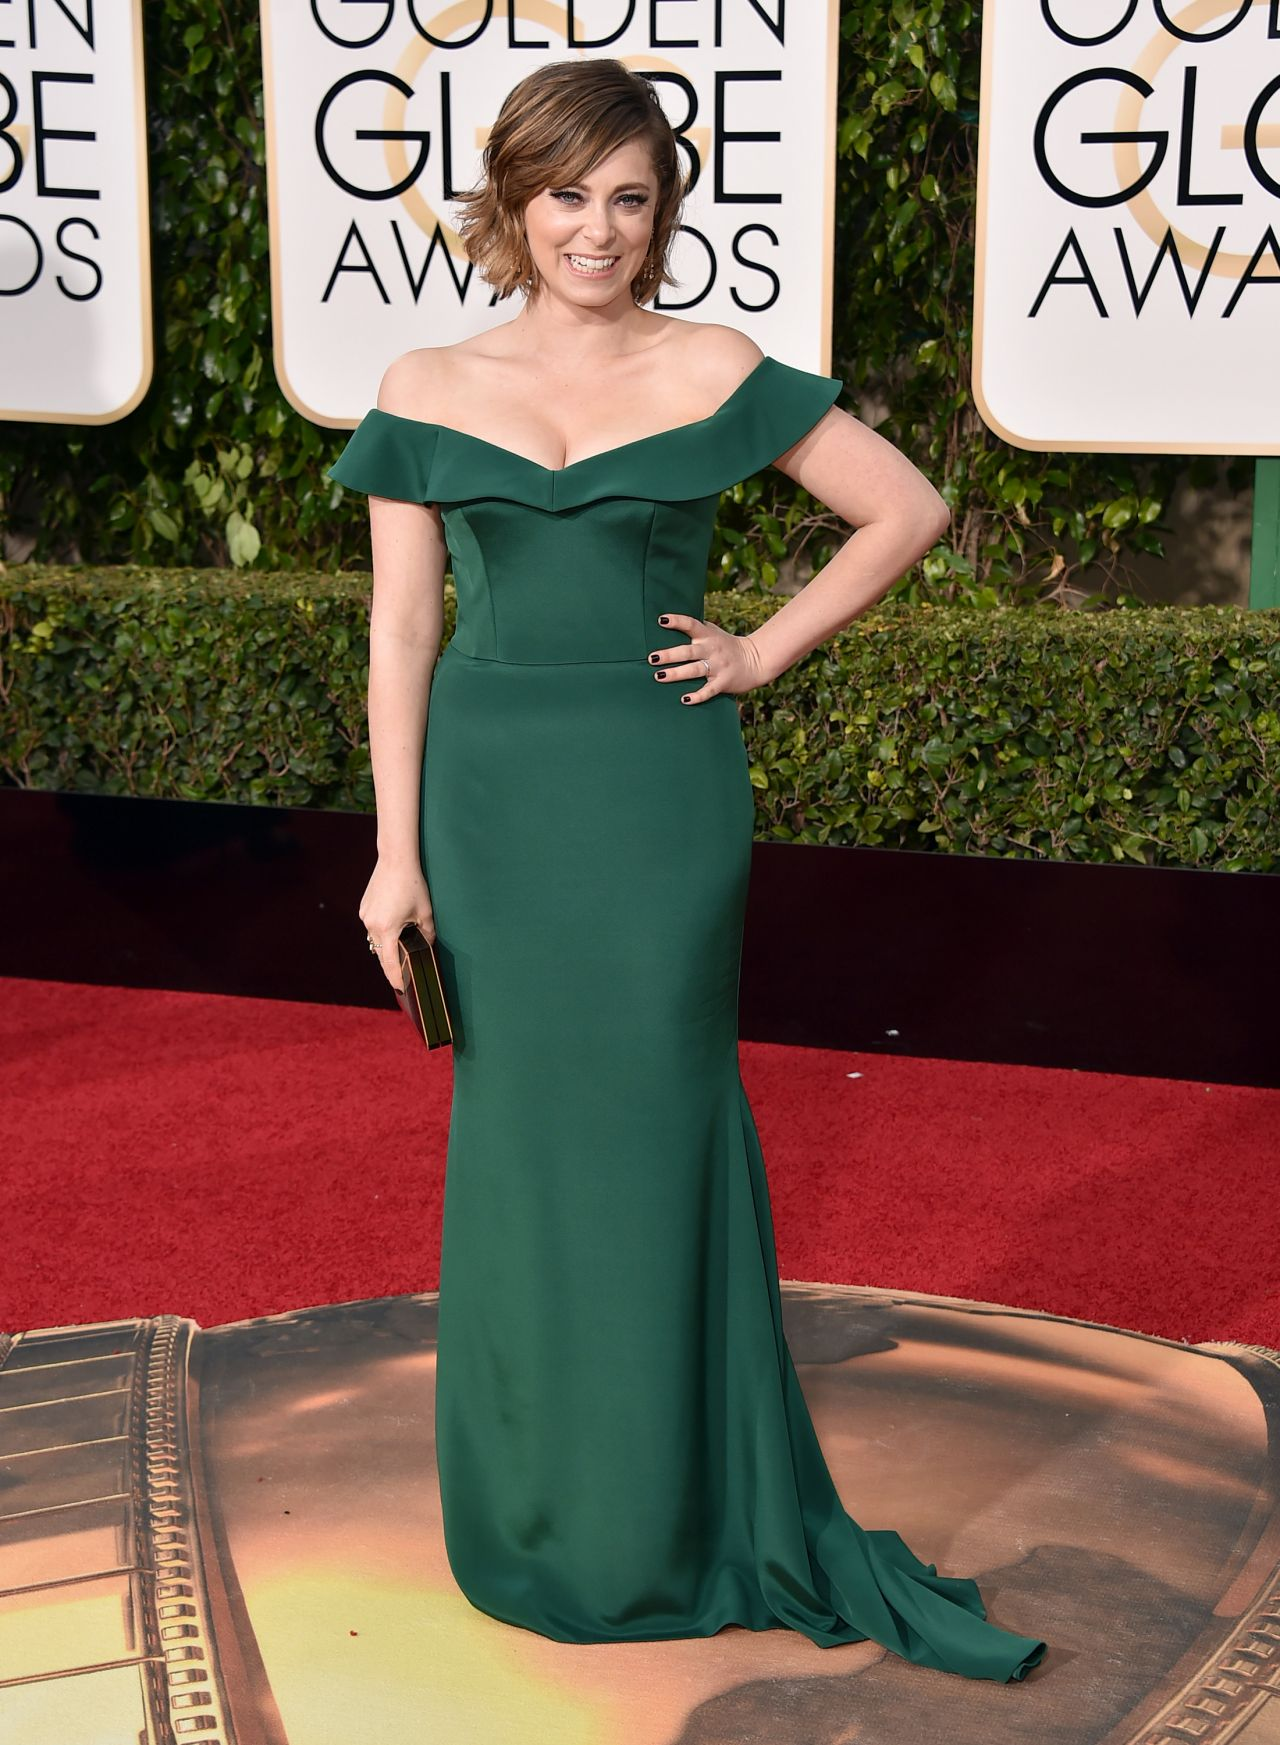 rachel-bloom-2016-golden-globe-awards-in-beverly-hills-1